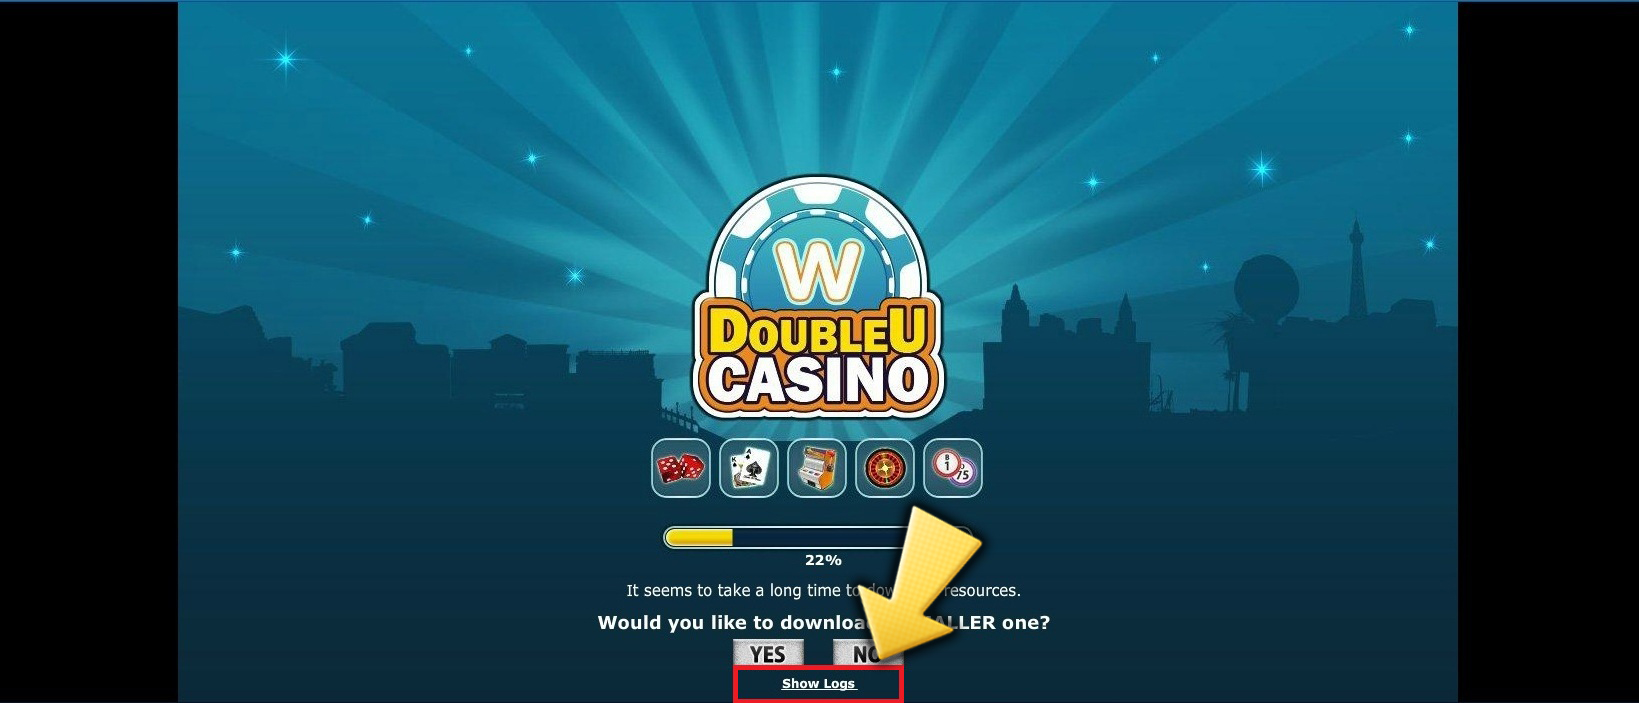 doubleu casino social game bonuses collector